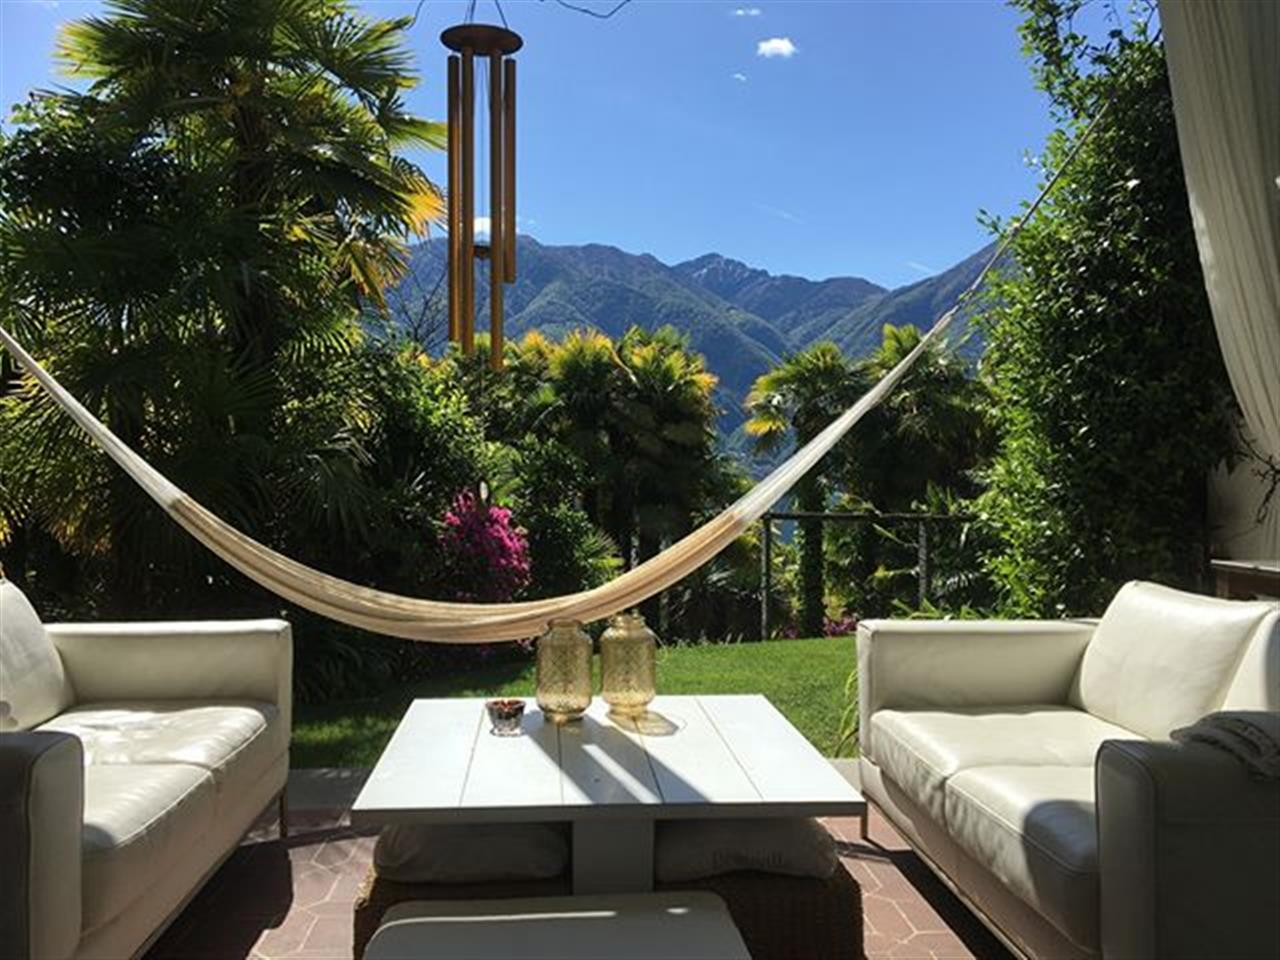 Looking forward for spring time in Ticino. #luxuryvilla #lakemaggiore #ticino #switzerland #luxuryrealestate #inlovewithswitzerland #luxurylife #luxurylifestyle #christiesinternationalrealestate #luxuryportfolio #wetagconsulting #leadingre #ChristiesHomes #LeadingRElocal